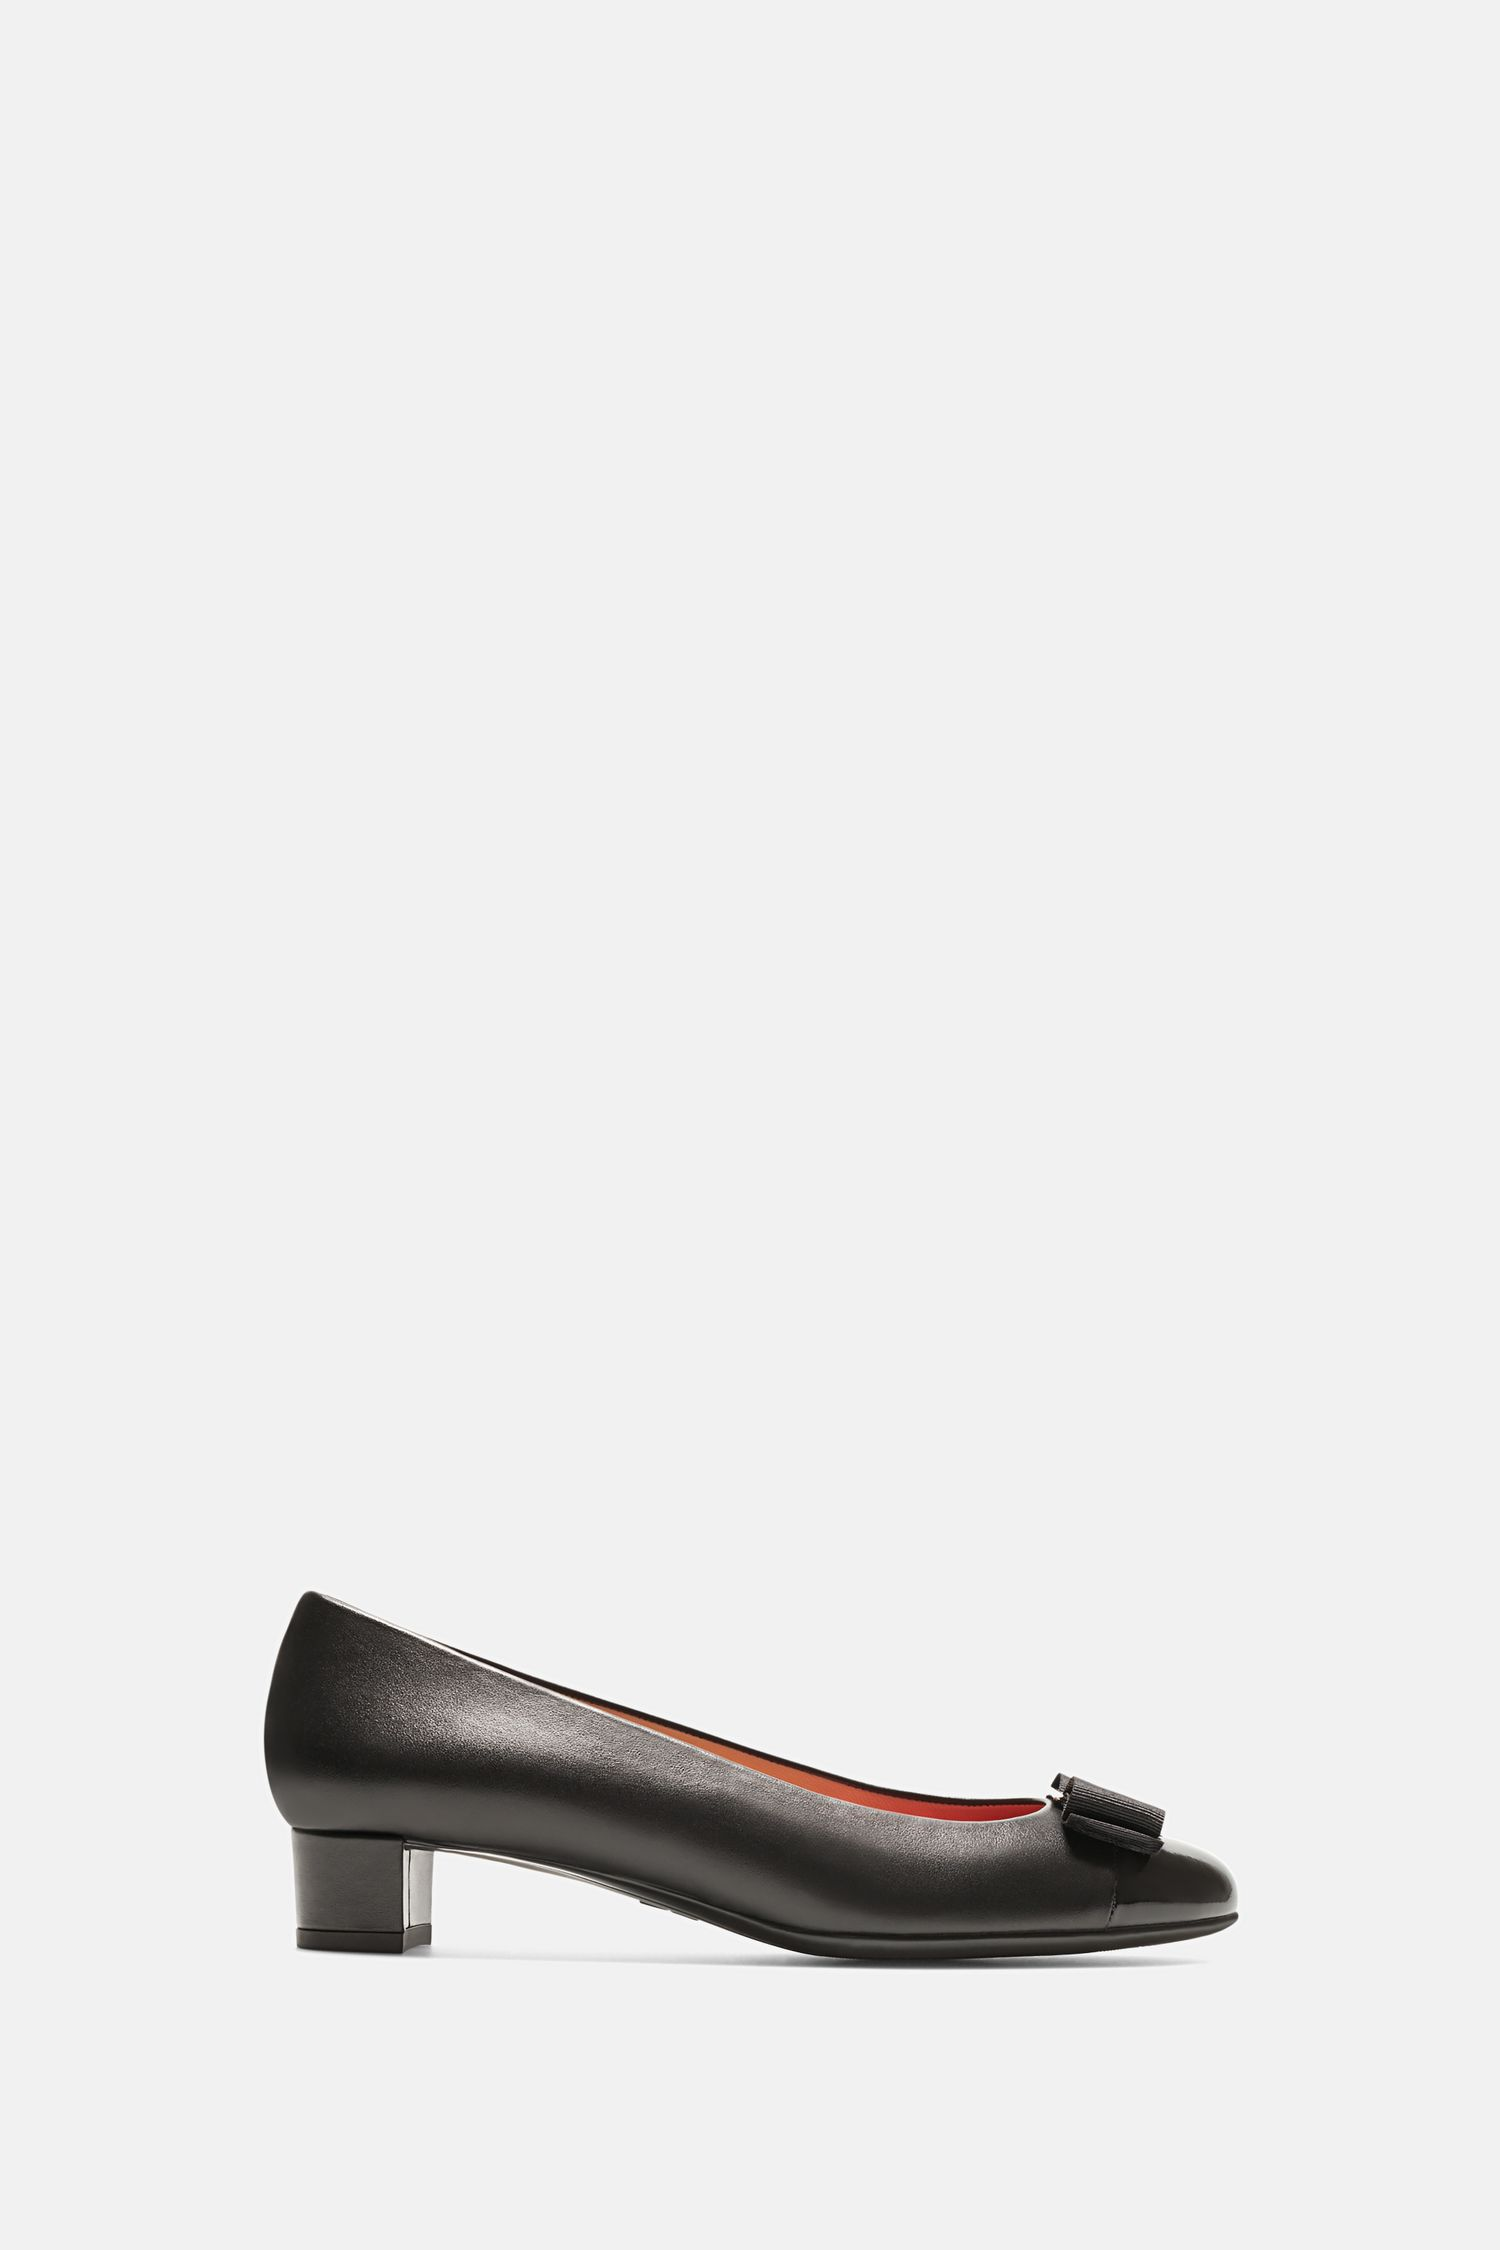 0c5fec09387bc BLACK Napa leather low pumps - Flats CH Carolina Herrera | Napa ...